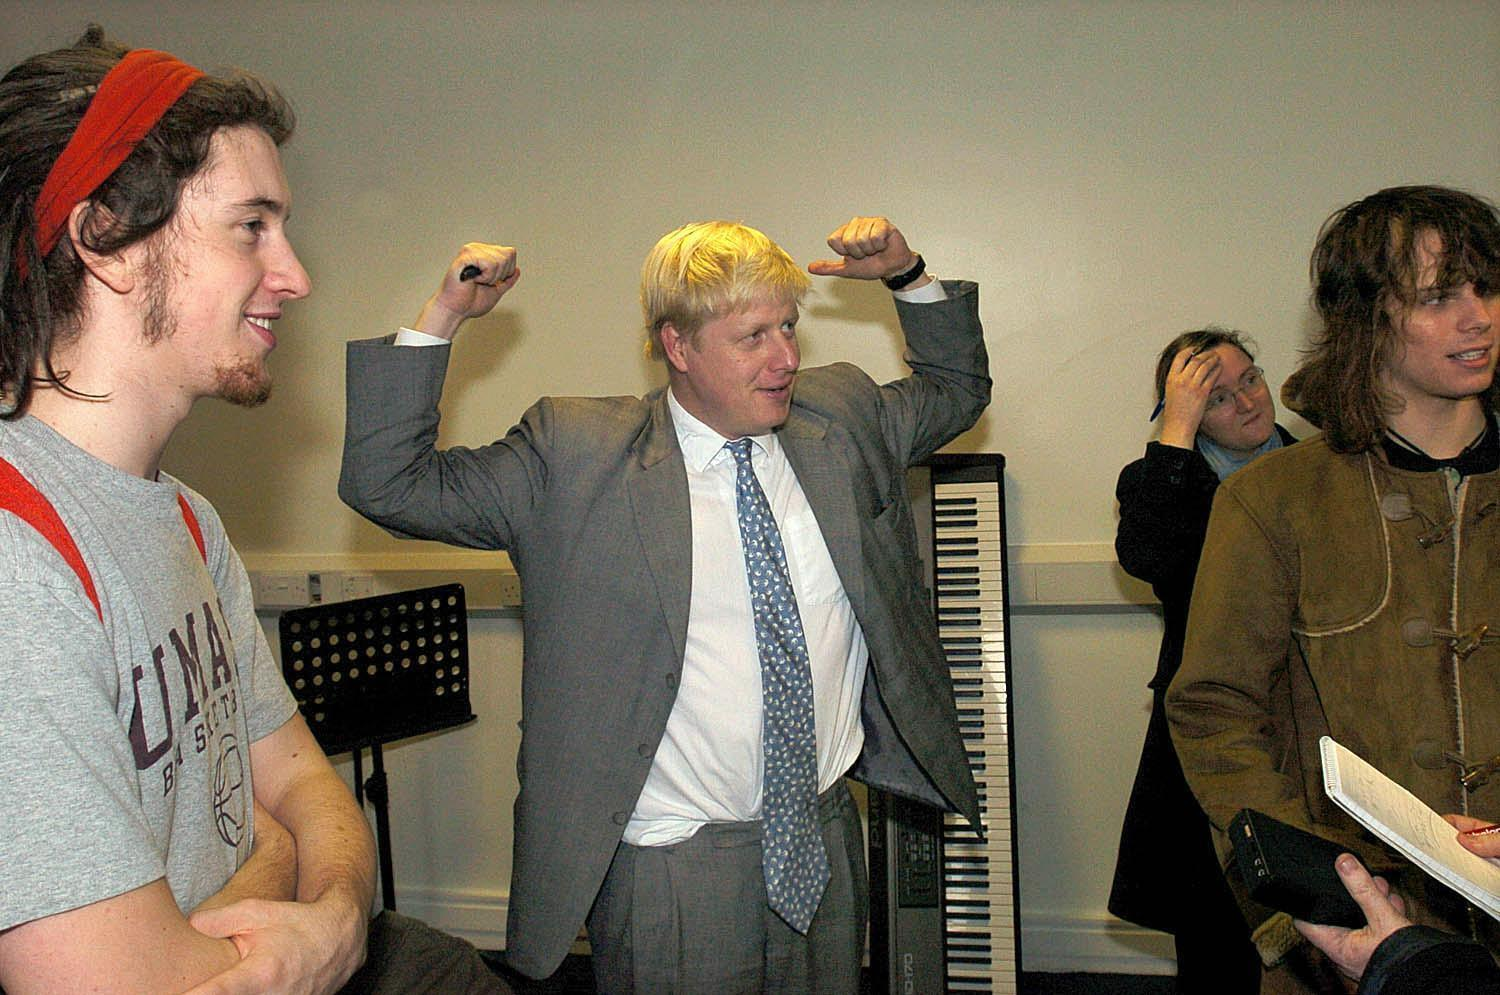 """Boris Johnson MP (centre) and editor of the Spectator at the Liverpool Institute for Performing Arts during a visit to the city to apologise for remarks made in his magazine about beheaded hostage Ken Bigley and the Hillsborough tragedy. But council leaders called on the people of Liverpool to ignore the """"Boris Johnson show"""". The Tory MP for Henley created a storm of protest after the publication of a leader written in the Spectator, which suggested Liverpudlians were """"hooked on grief""""."""